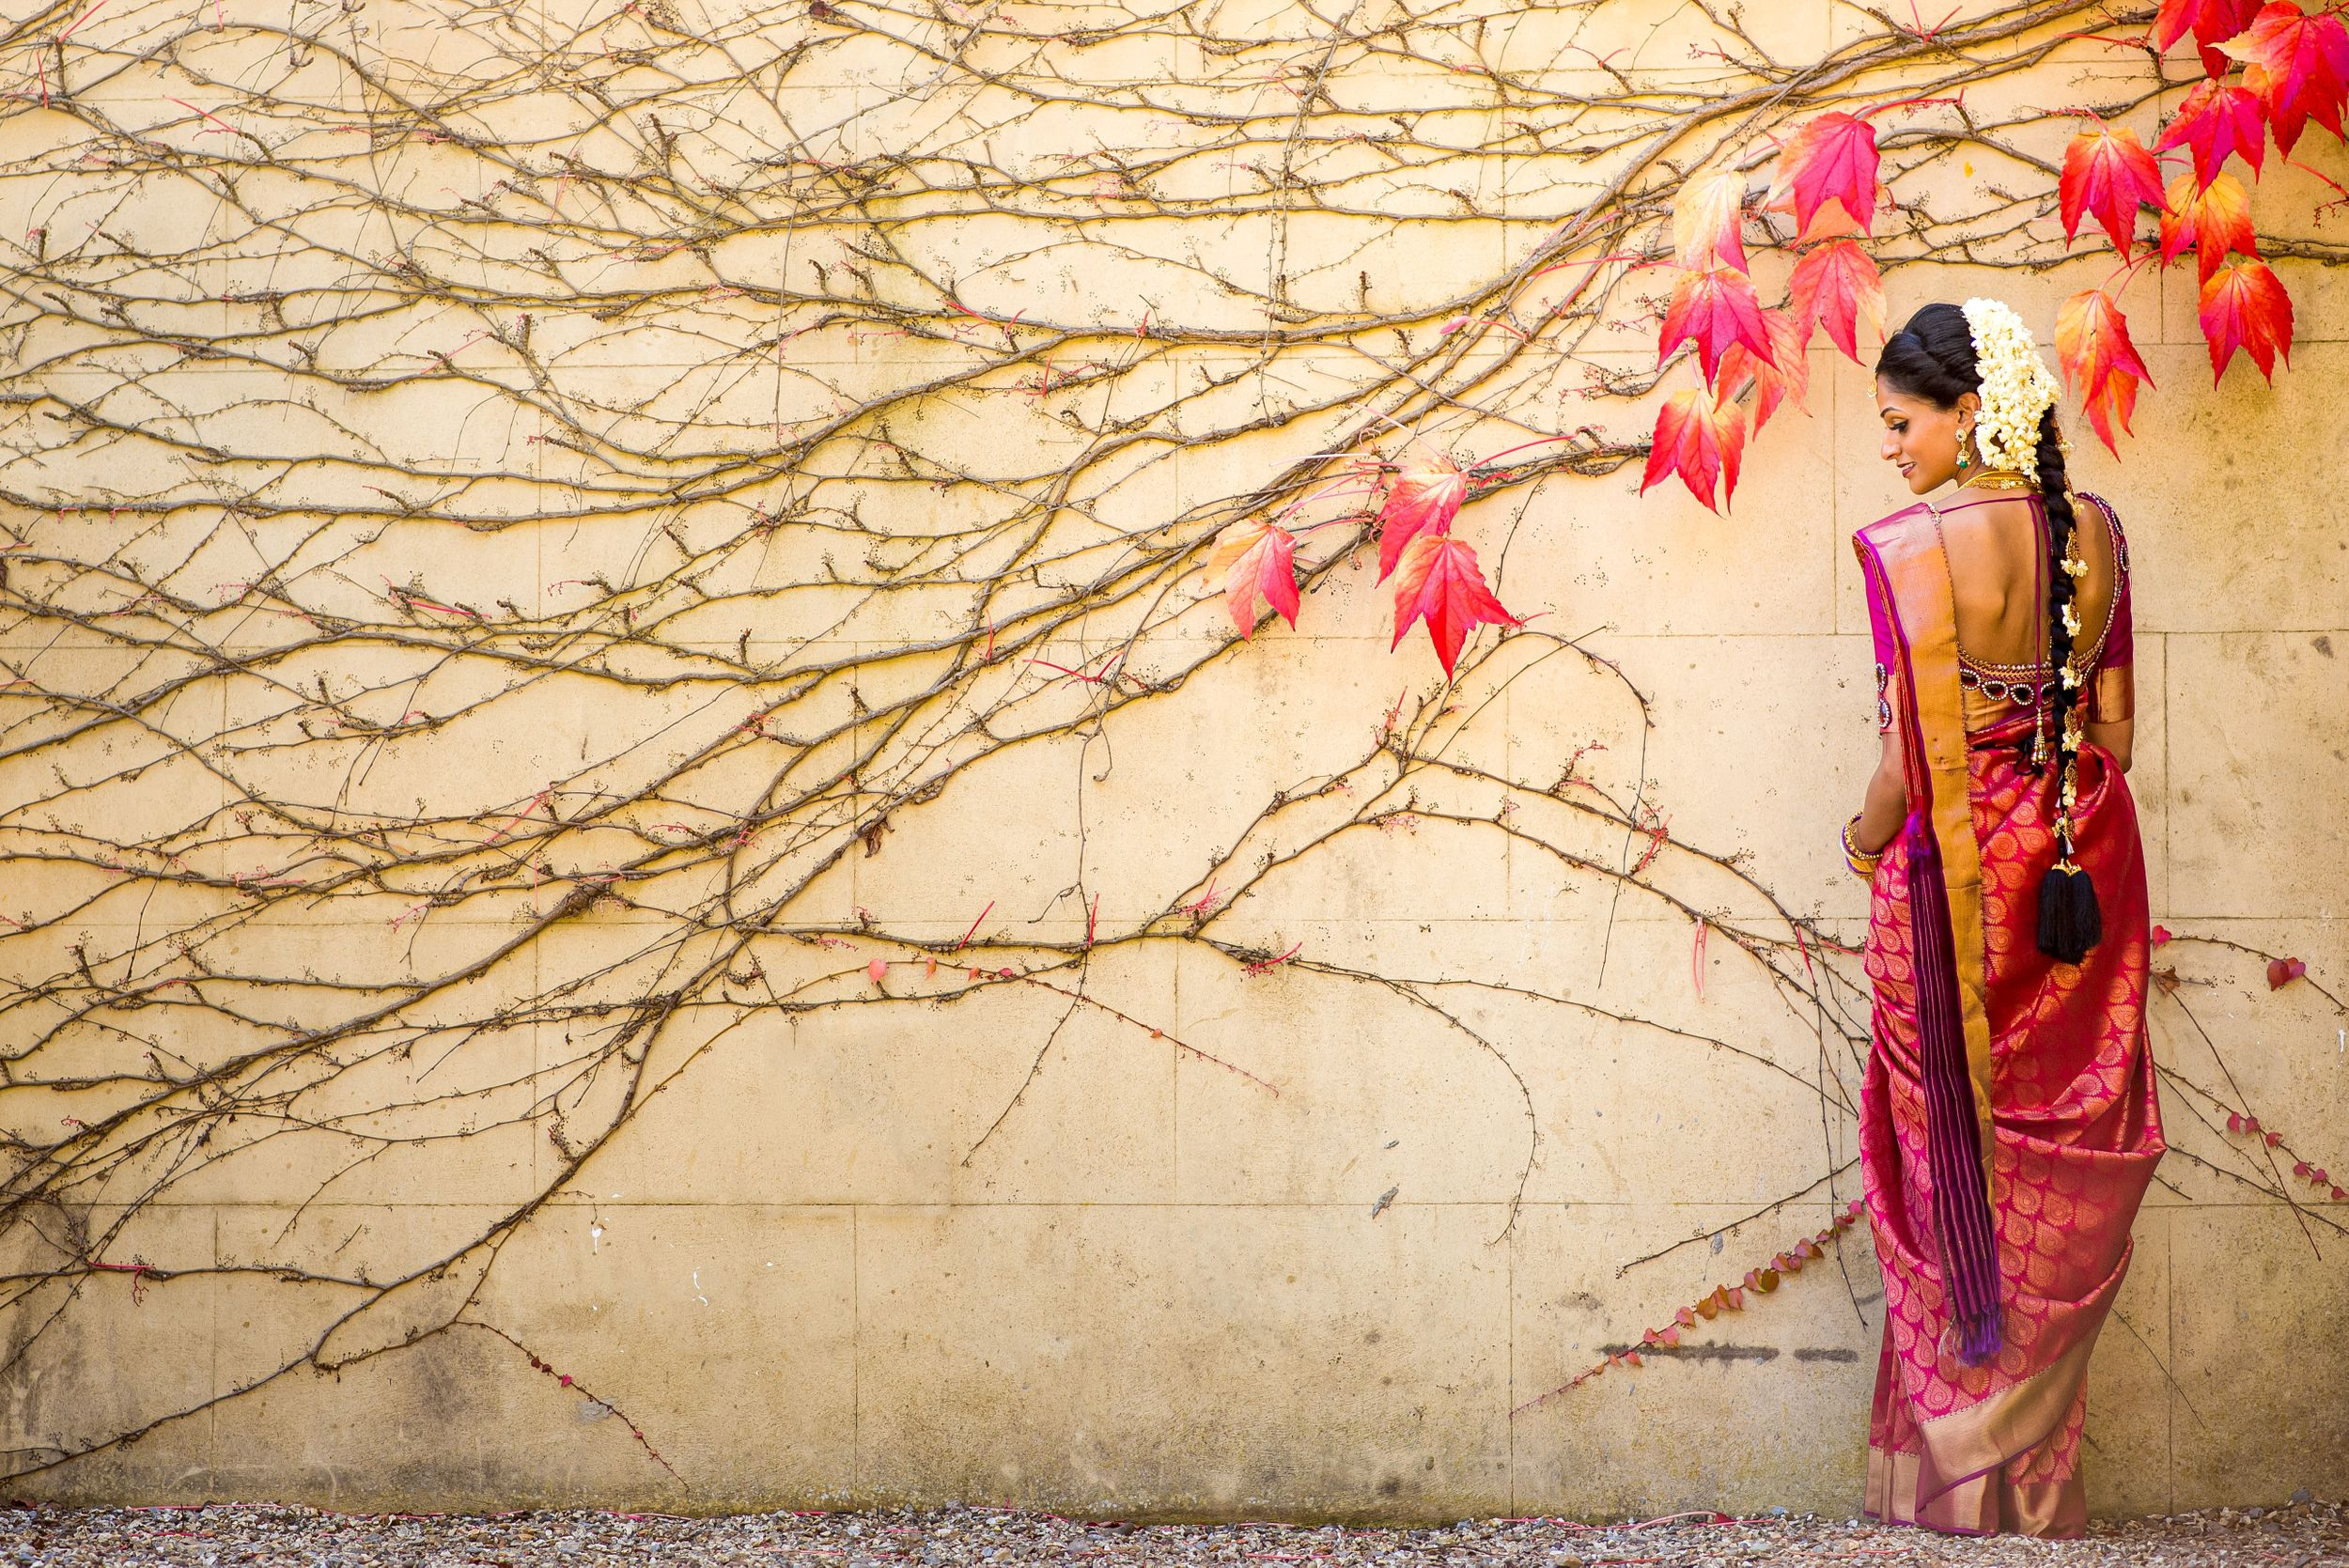 Tamil wedding photography at Northbrook Park by award winning Tamil wedding photographer Sheraz Khwaja